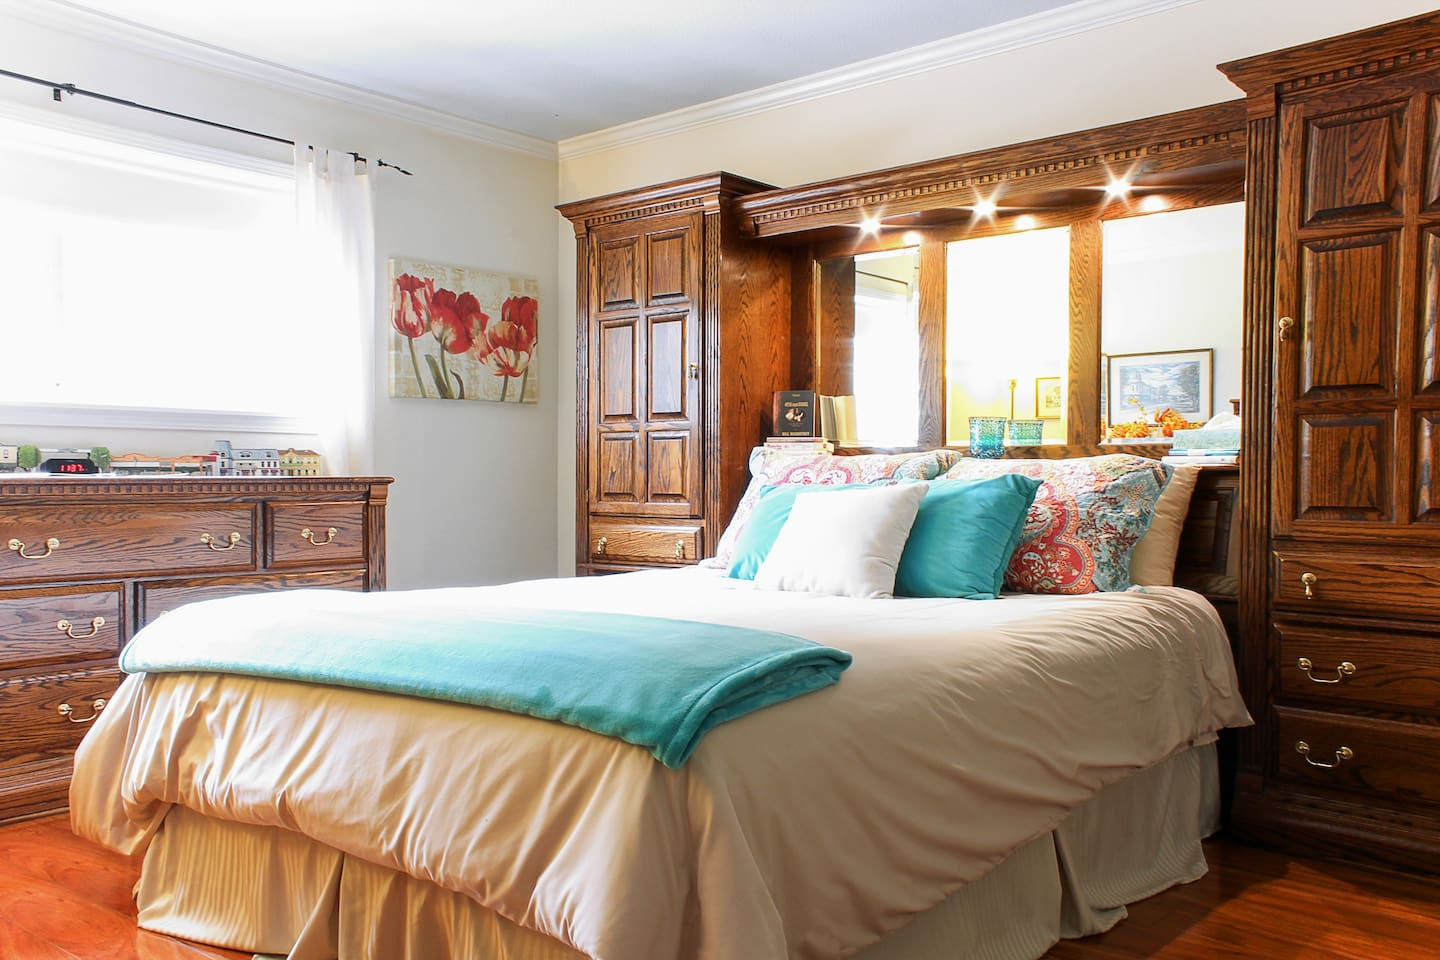 Comfortable Queen size bed with overhead dimmer switch reading lights.